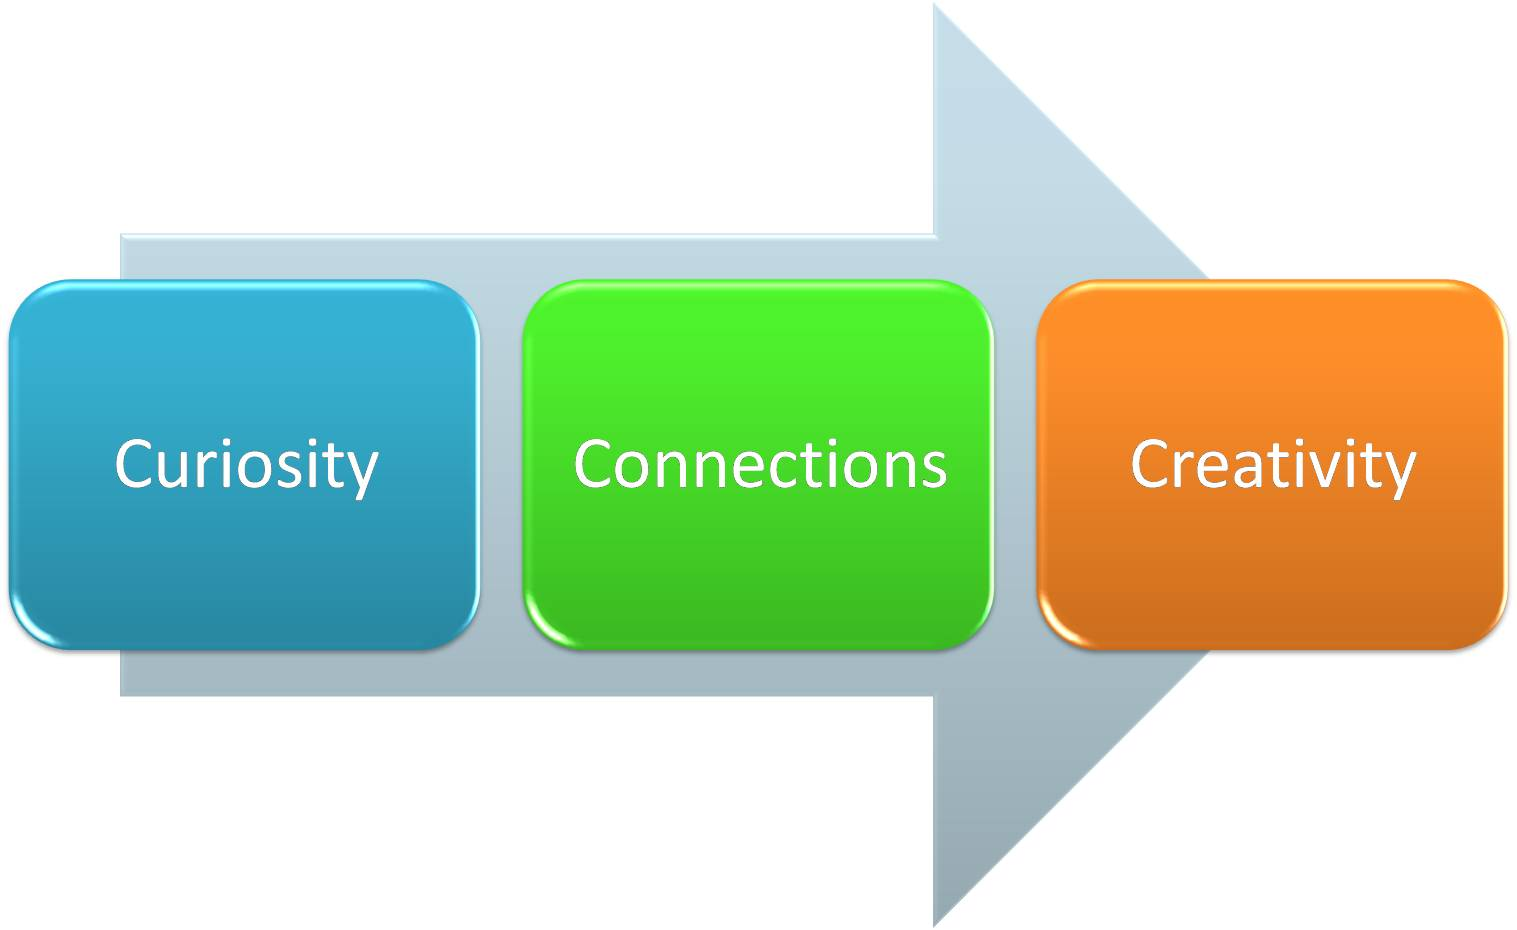 The creativity lifecycle